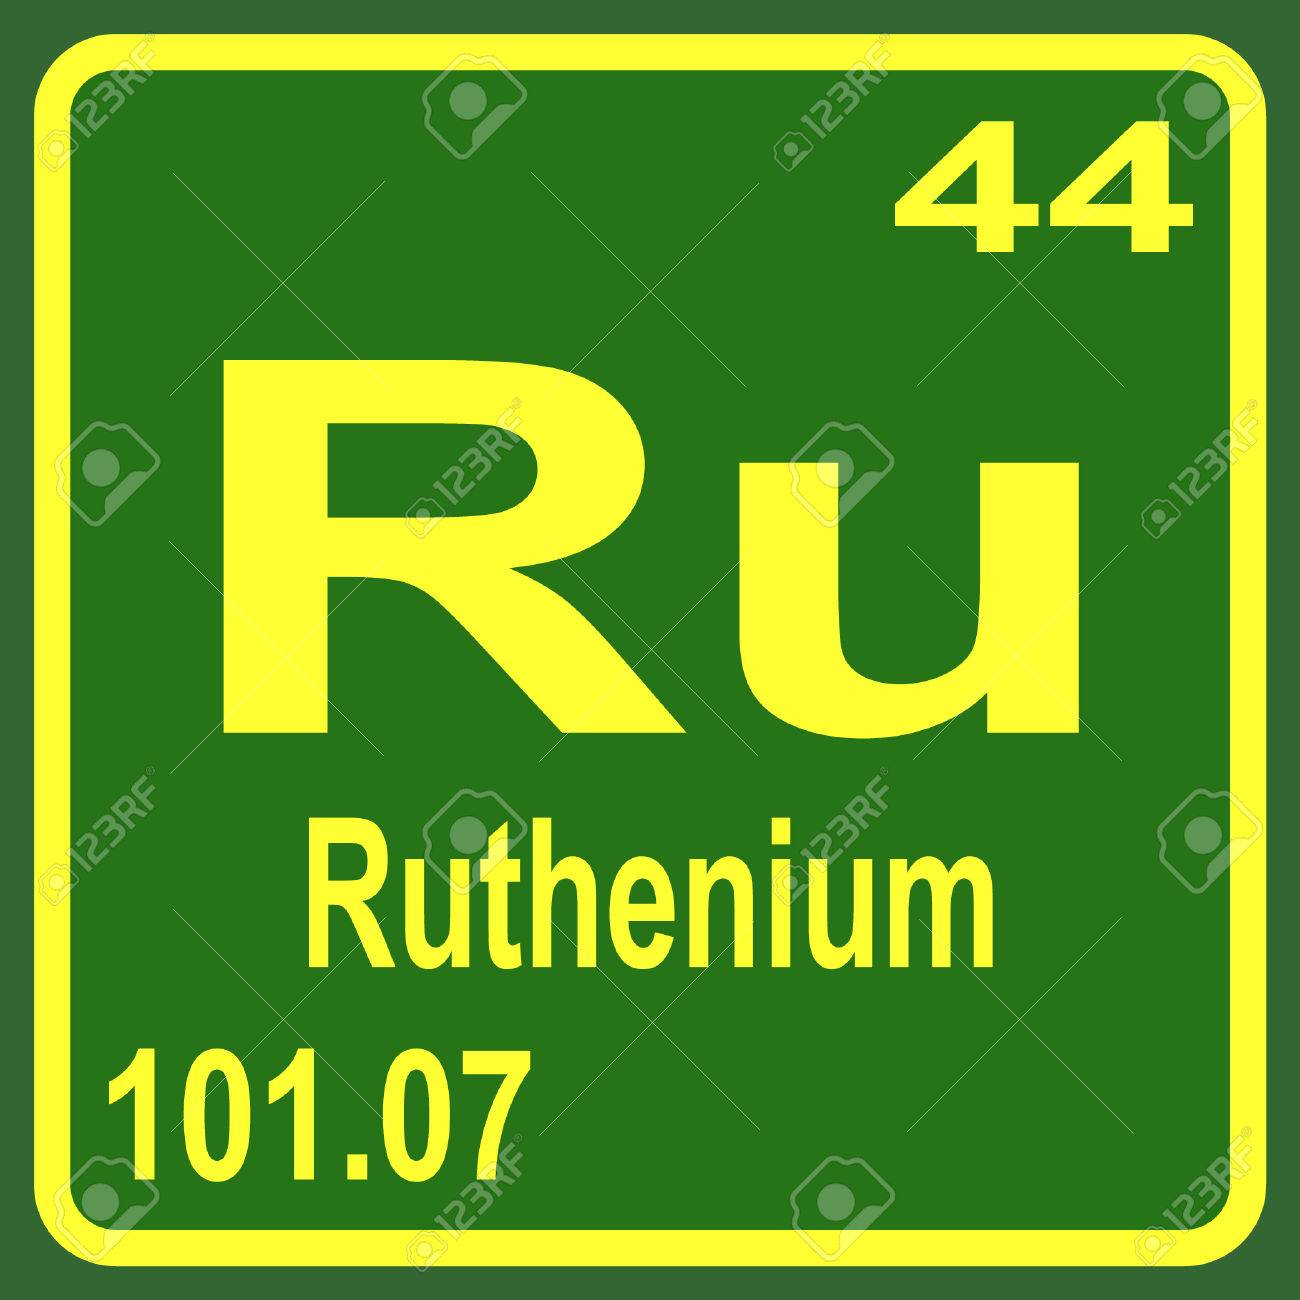 Periodic table of elements ruthenium royalty free cliparts periodic table of elements ruthenium stock vector 53901710 gamestrikefo Choice Image